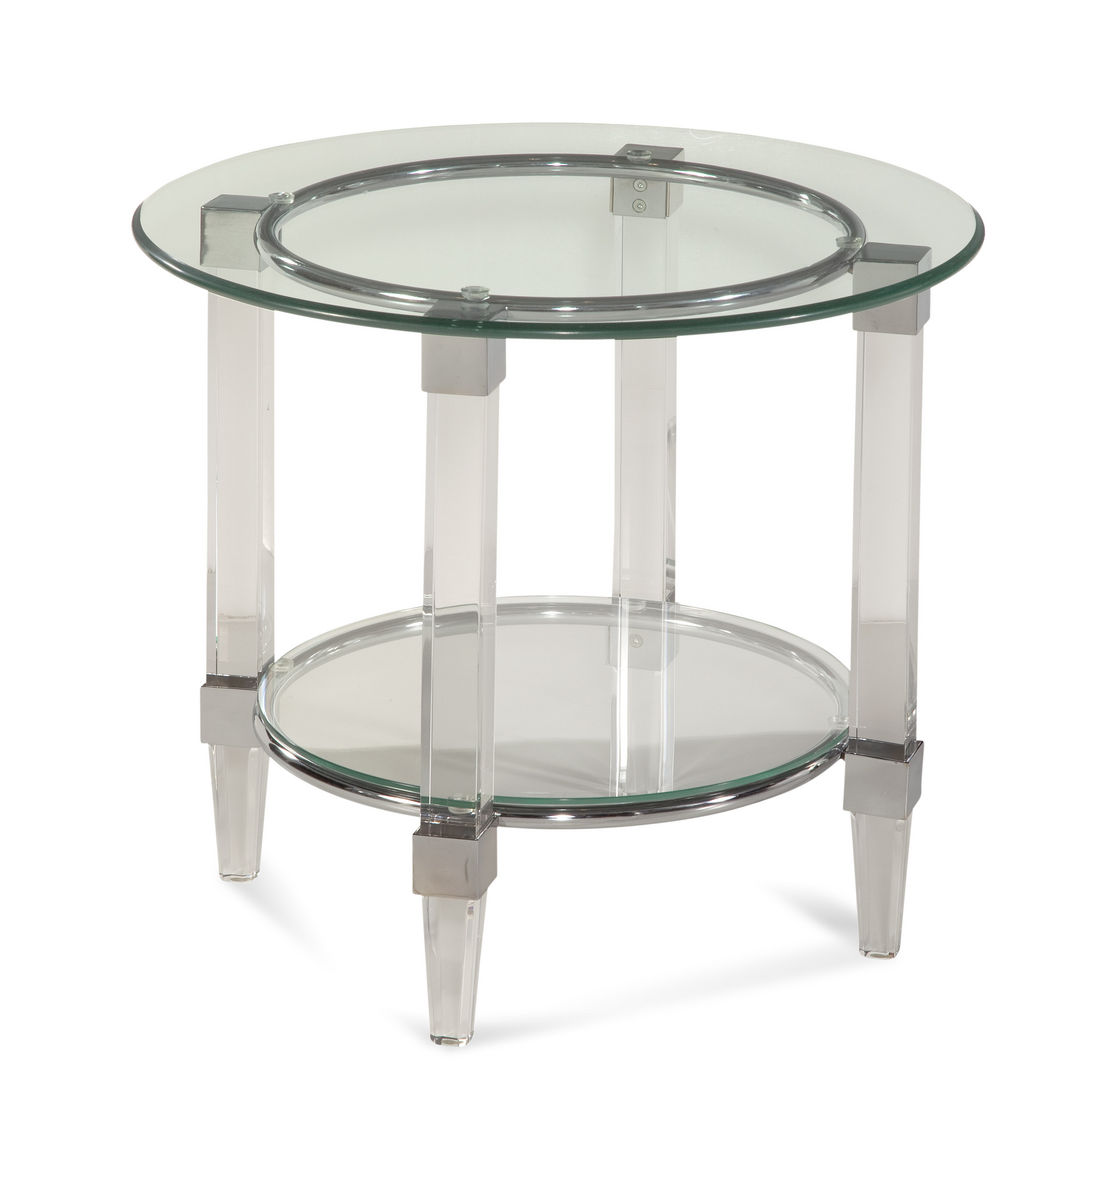 cristal round end table acrylic chrome unfinished accent shape oak silver crystal lamp door threshold lucite waterfall coffee porcelain vase small console with drawers high back